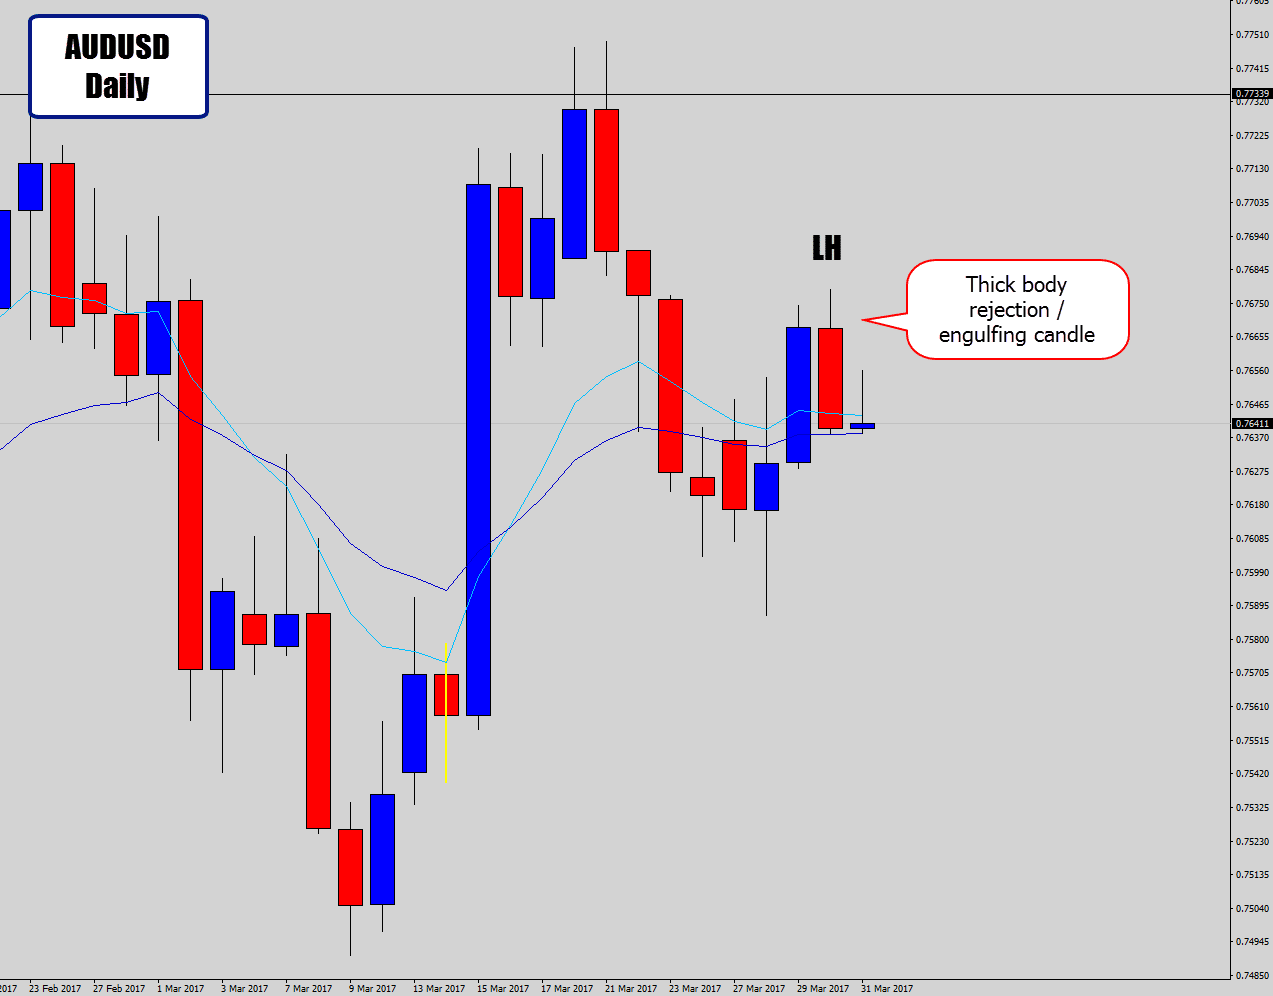 audusd daily sell after weekly sell